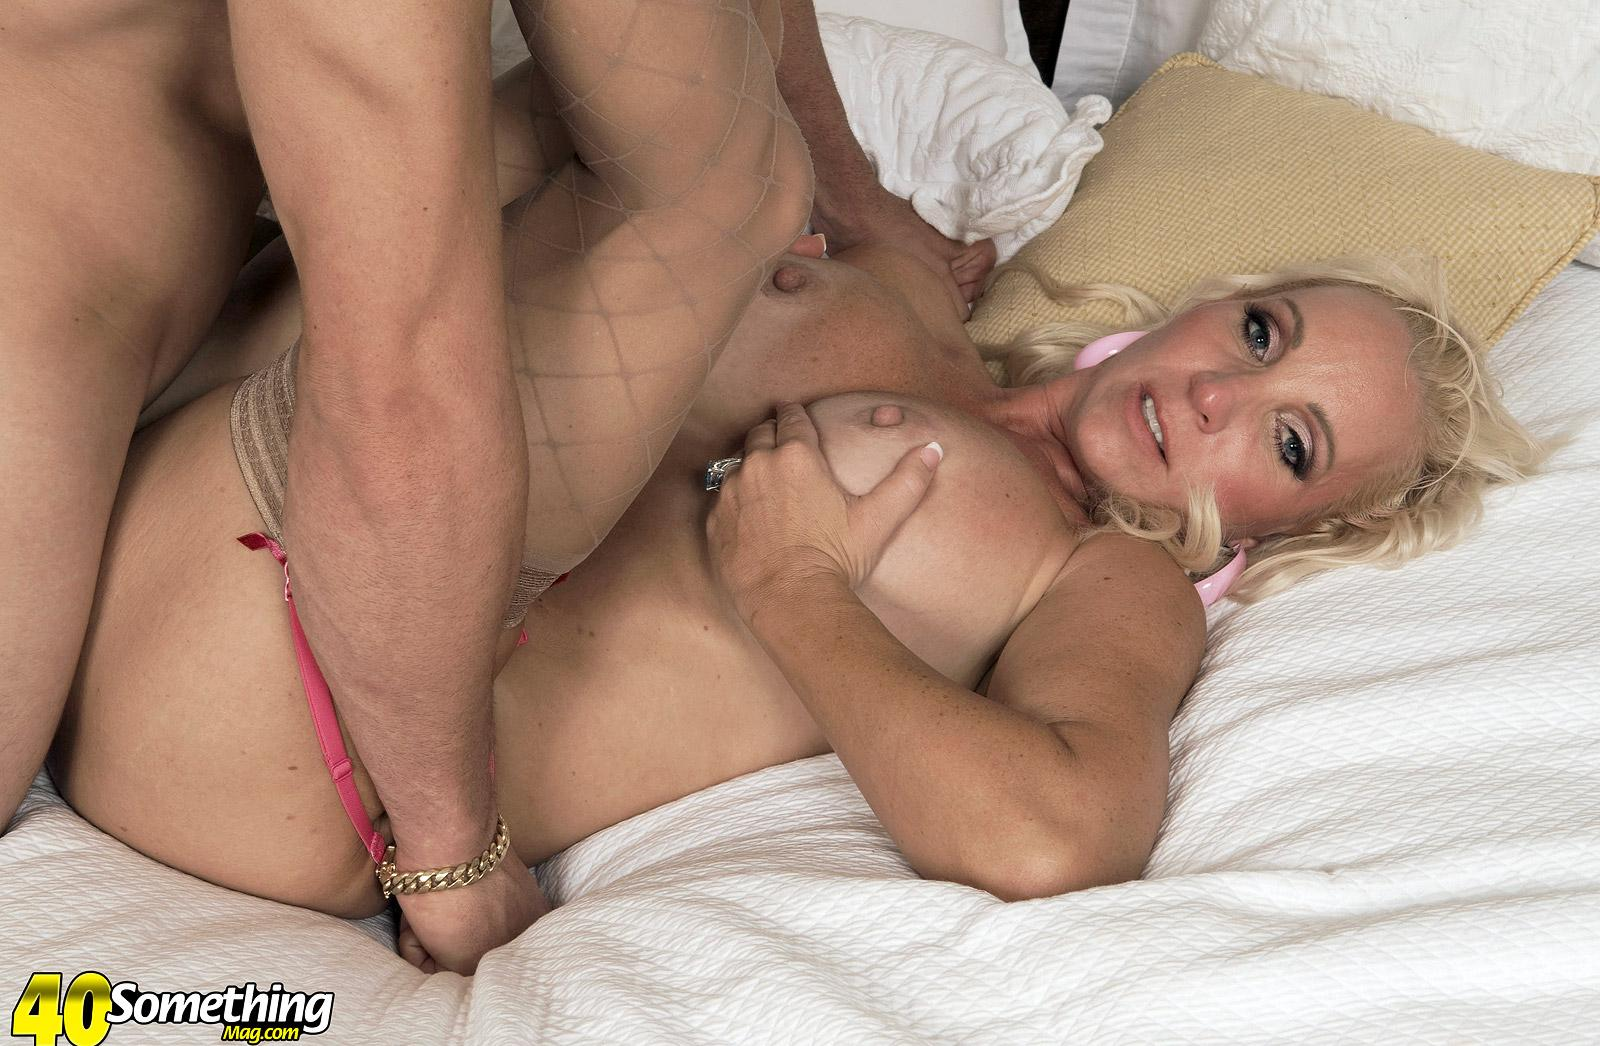 tall athletic dicoverd lady Anika Anderssen spending a fucked up afternoon with her personal gym trainer picture 16